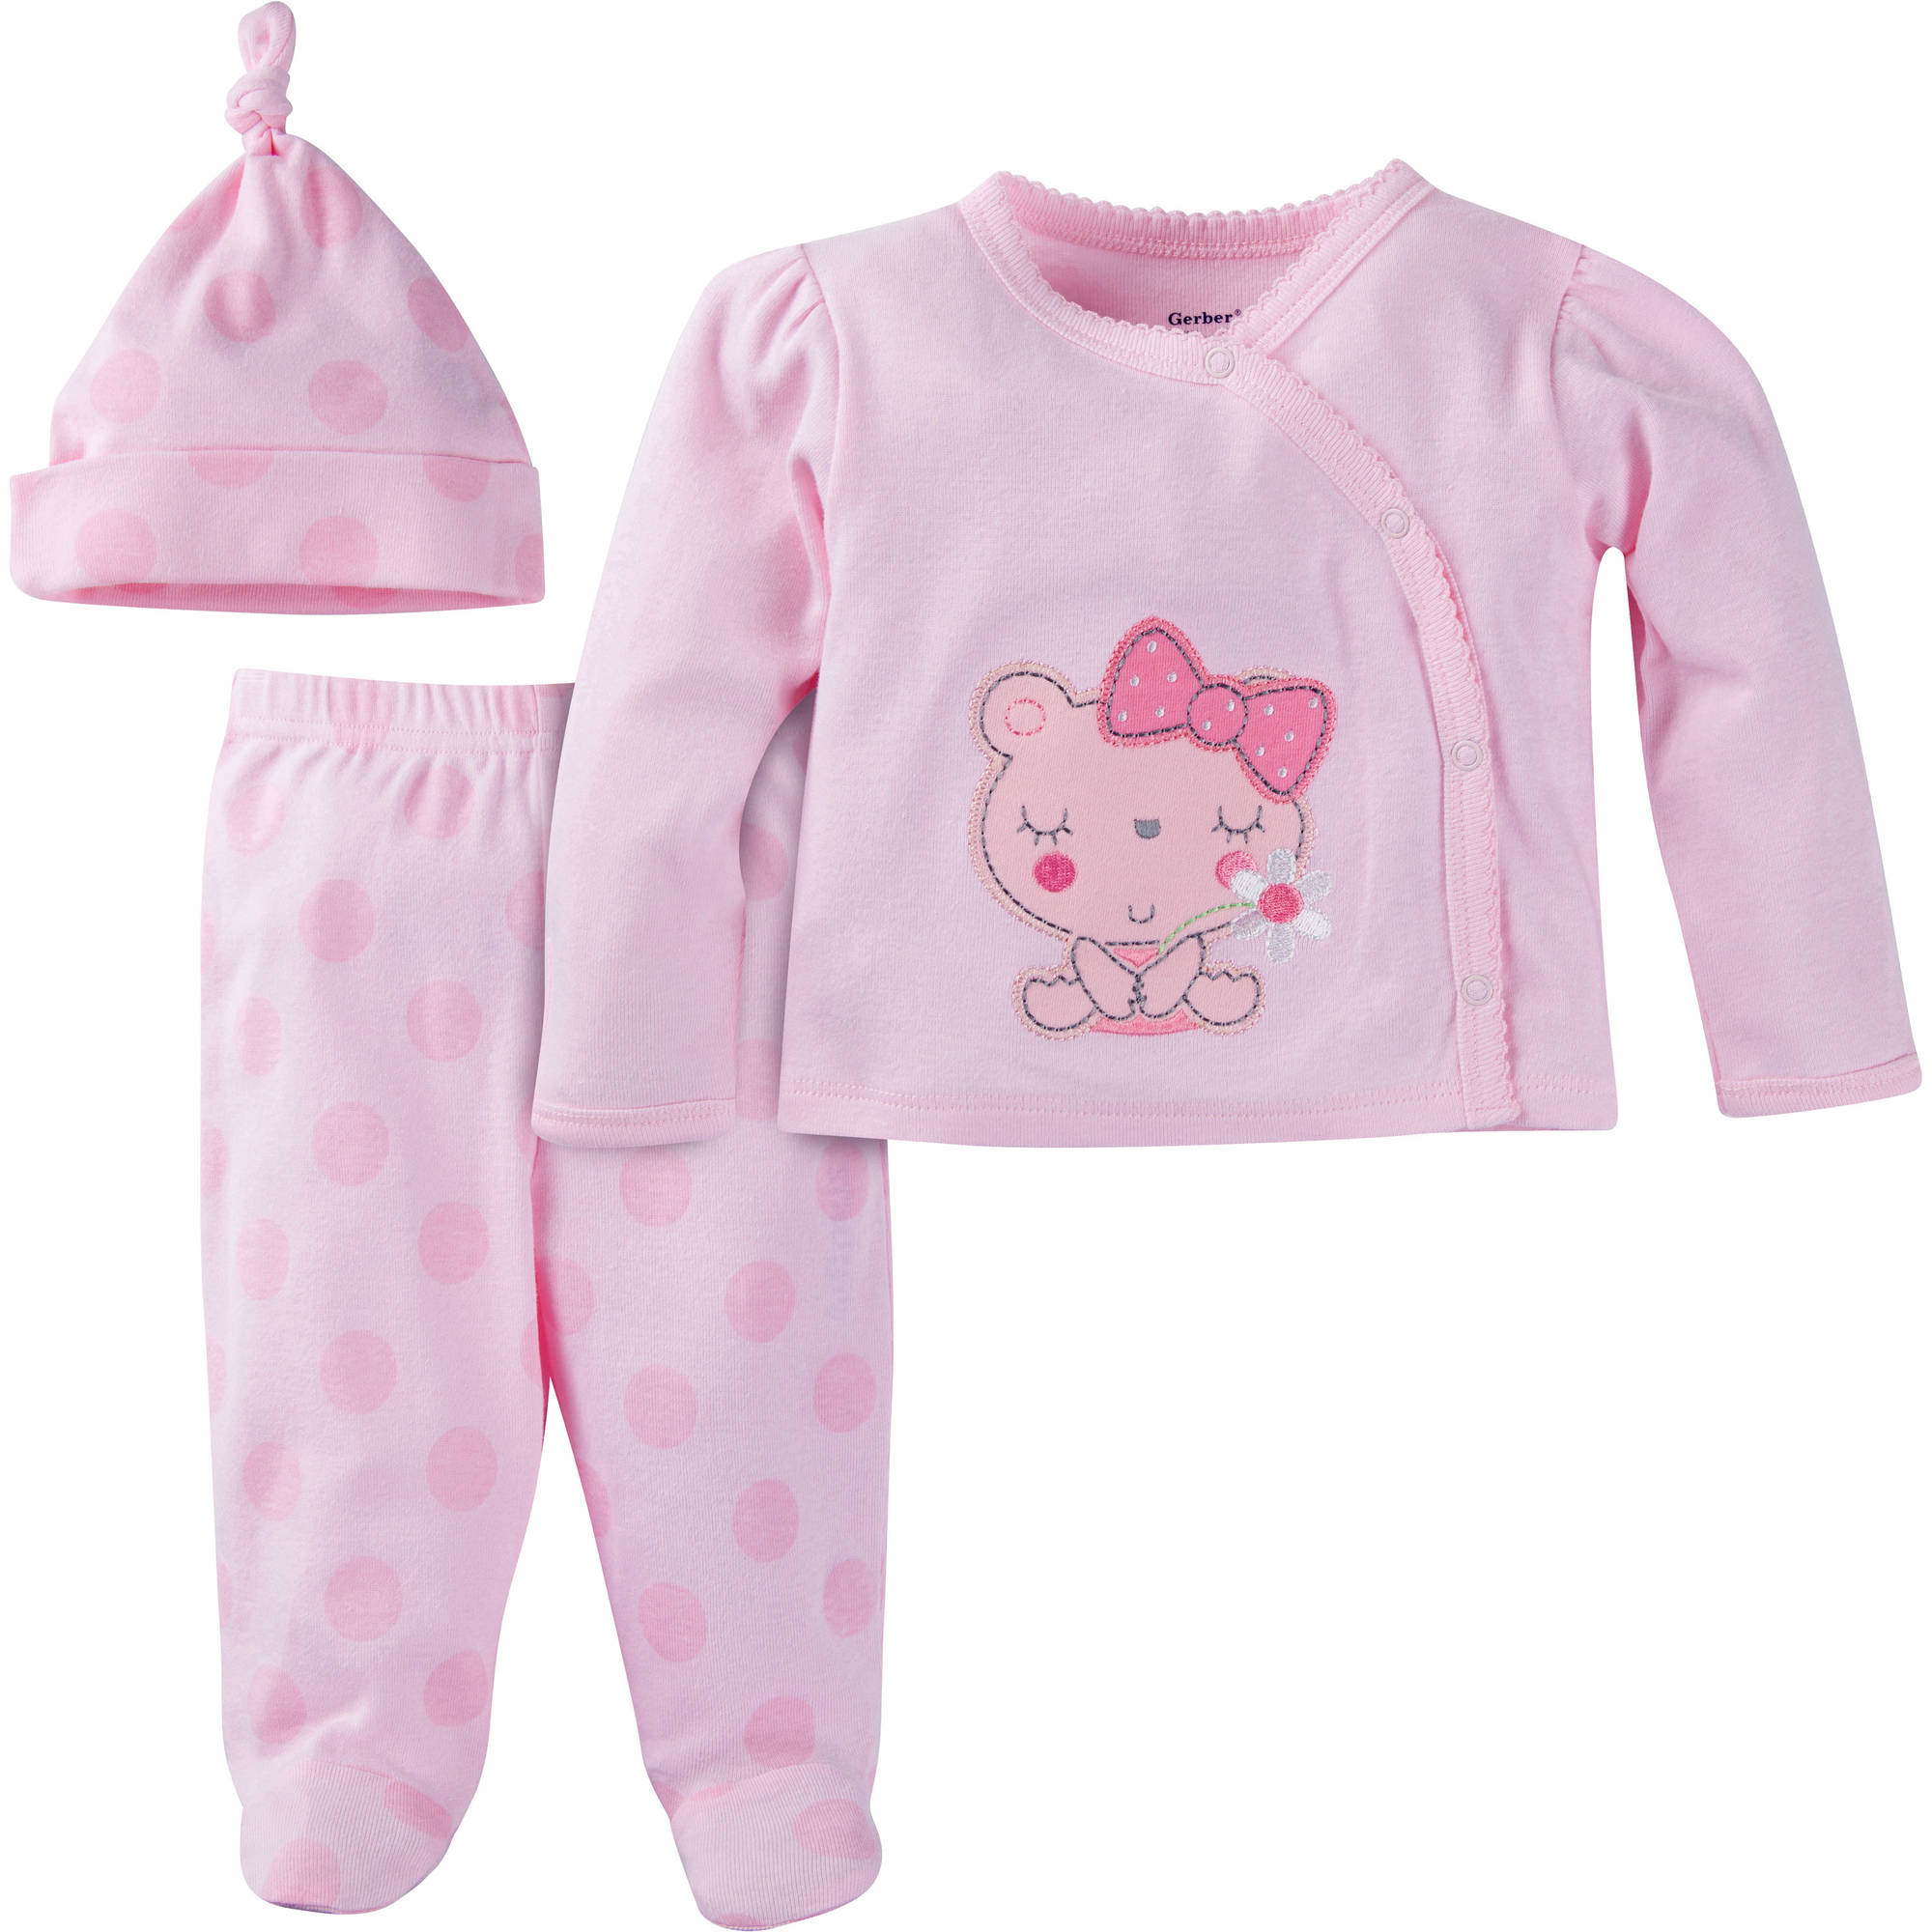 Gerber Newborn Baby Girl Take-Me-Home 3-Piece Layette Gift Set